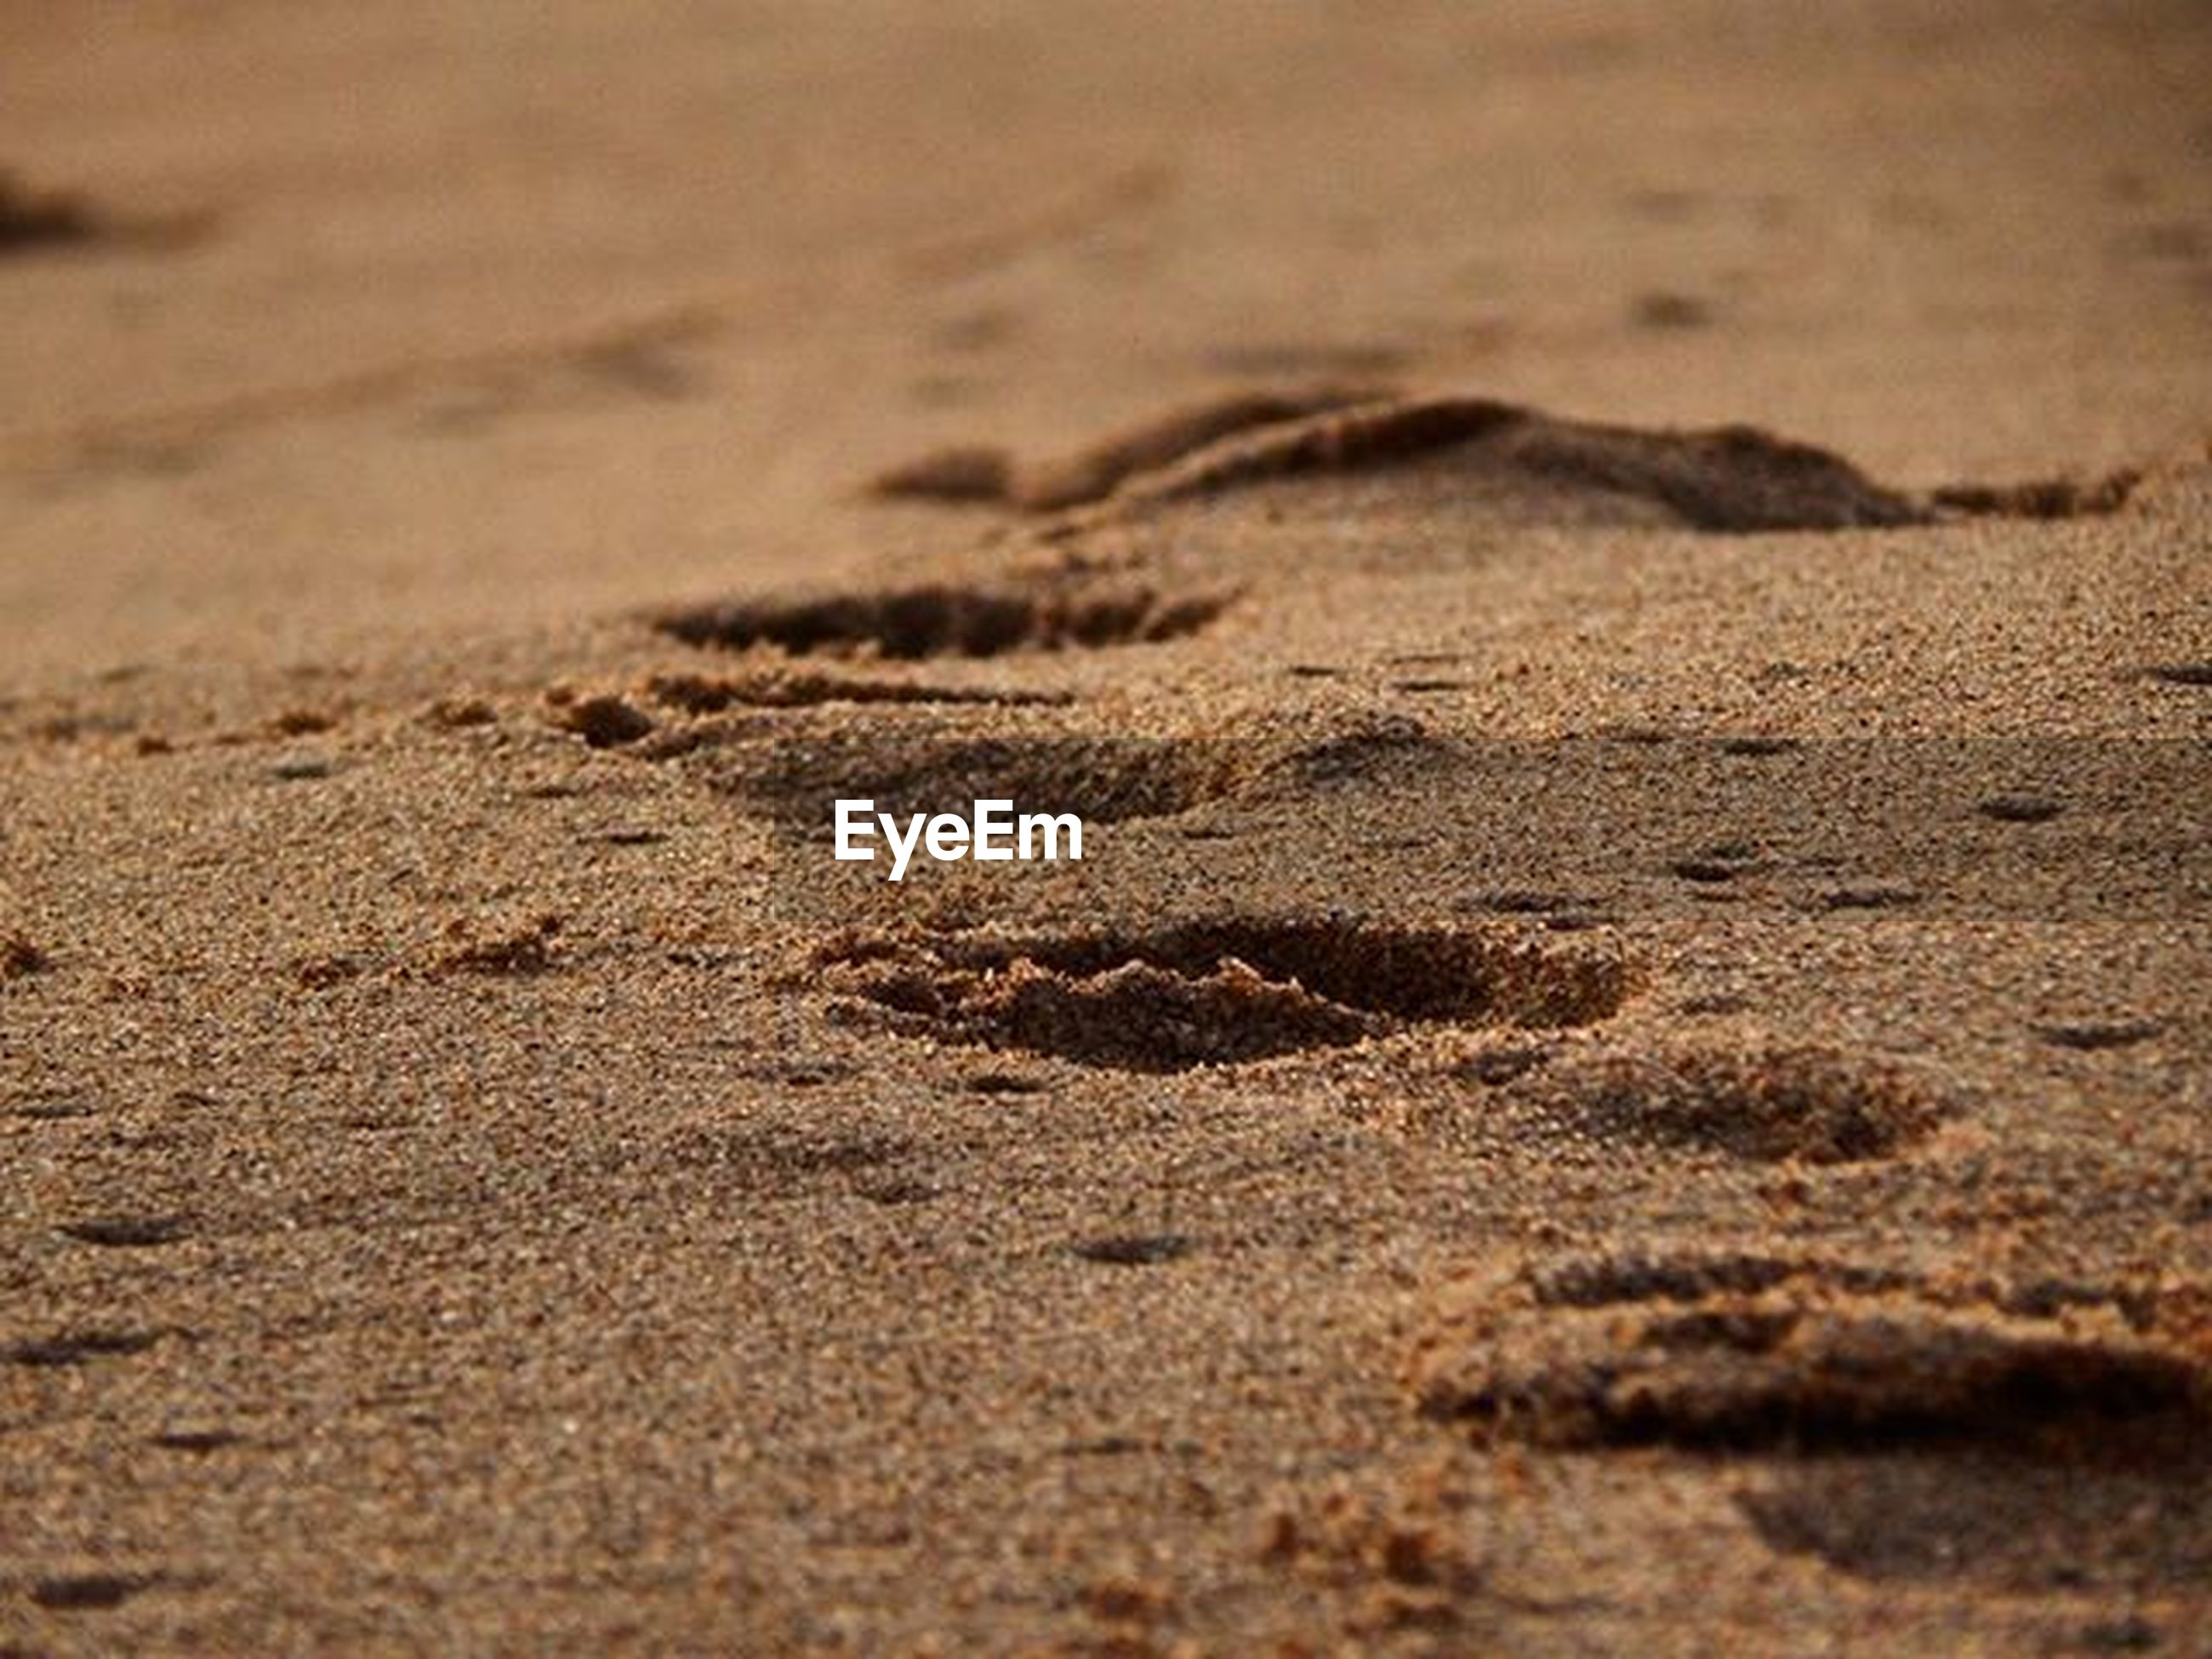 sand, beach, selective focus, surface level, shore, nature, tranquility, footprint, close-up, sunlight, textured, day, outdoors, no people, backgrounds, full frame, desert, high angle view, brown, natural pattern